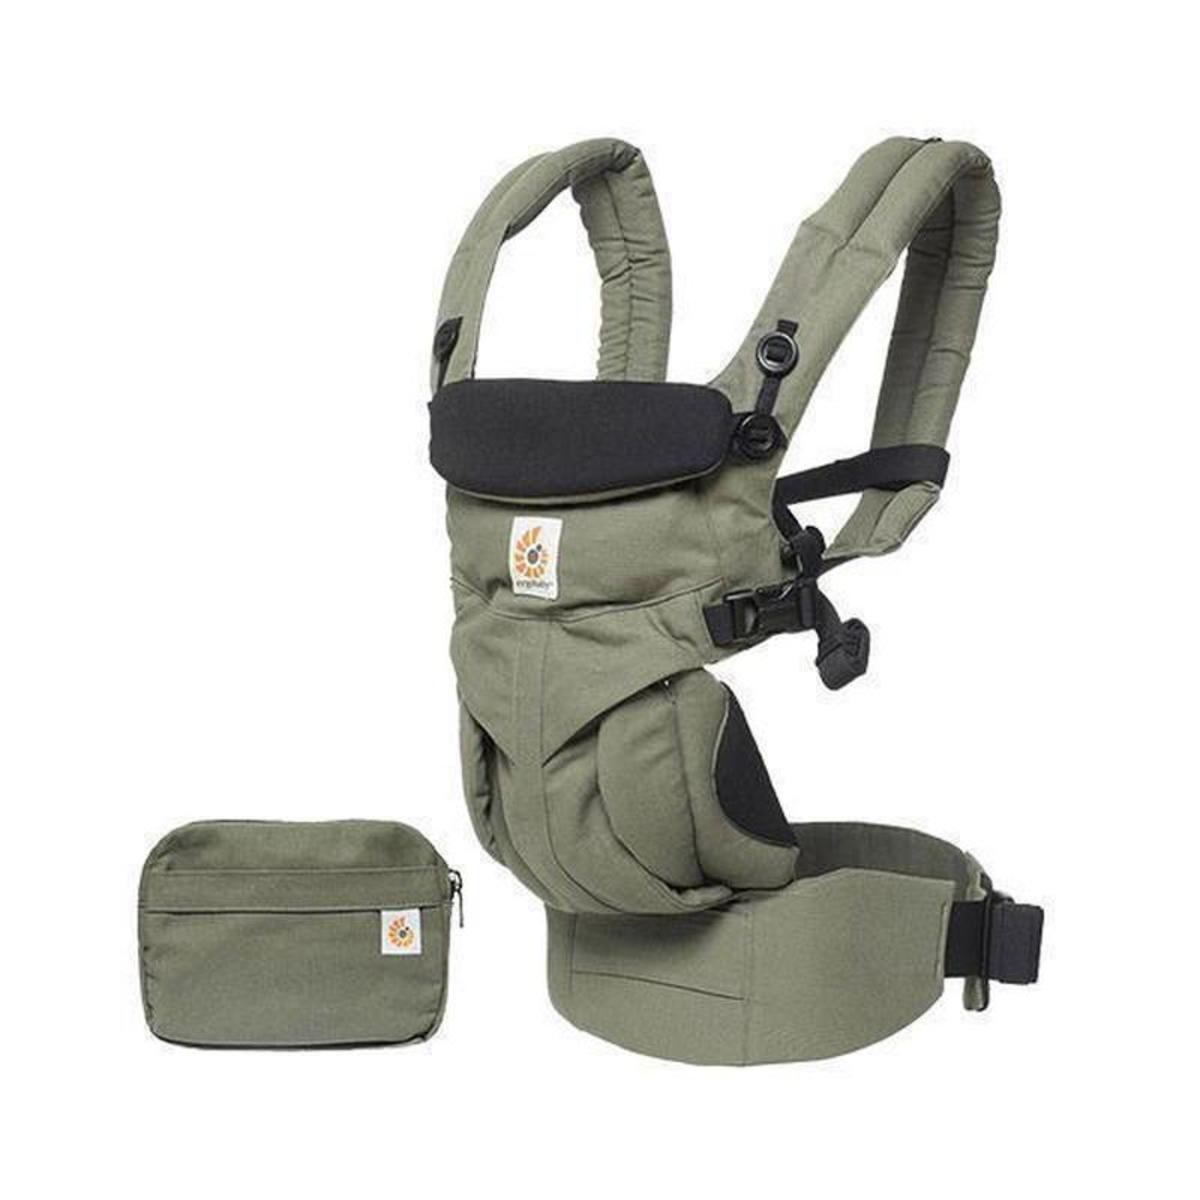 Ergobaby Omni all-stage four-type 360 baby carrier (6 models) - Khaki Green